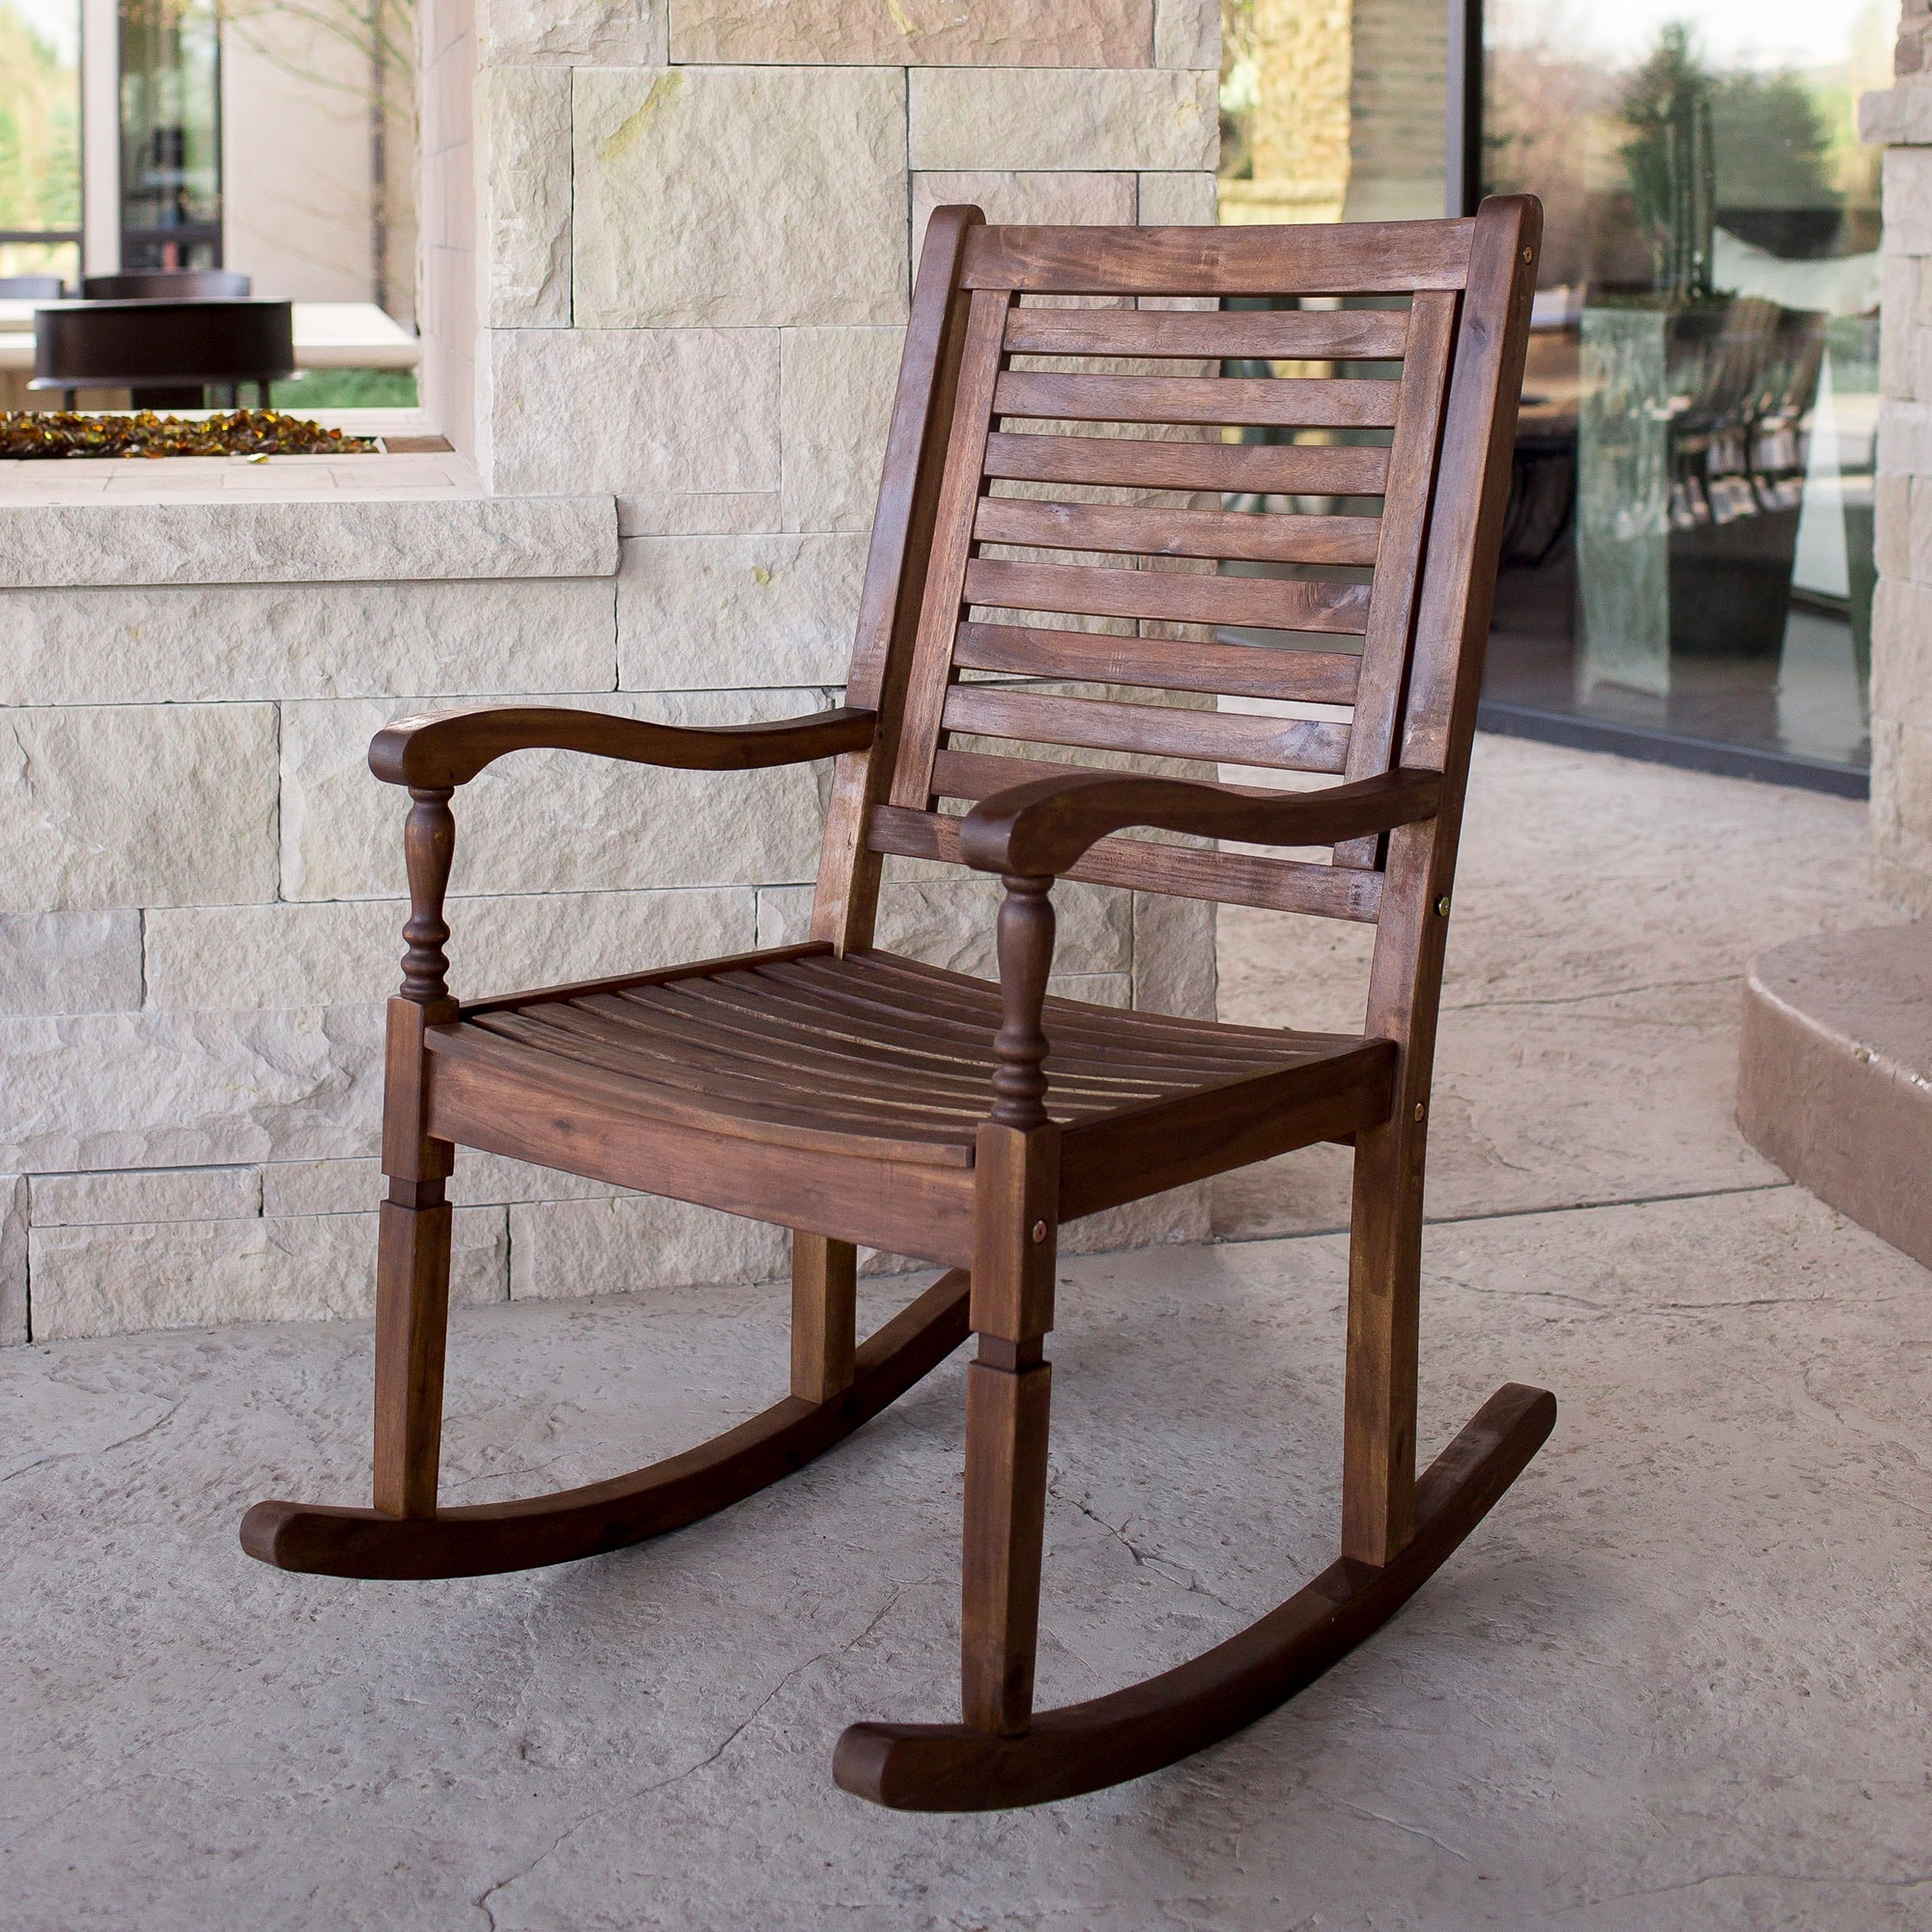 Solid Acacia Wood Rocking Patio Chair Dark Brown Free Shipping On Orders Over 45 14605280